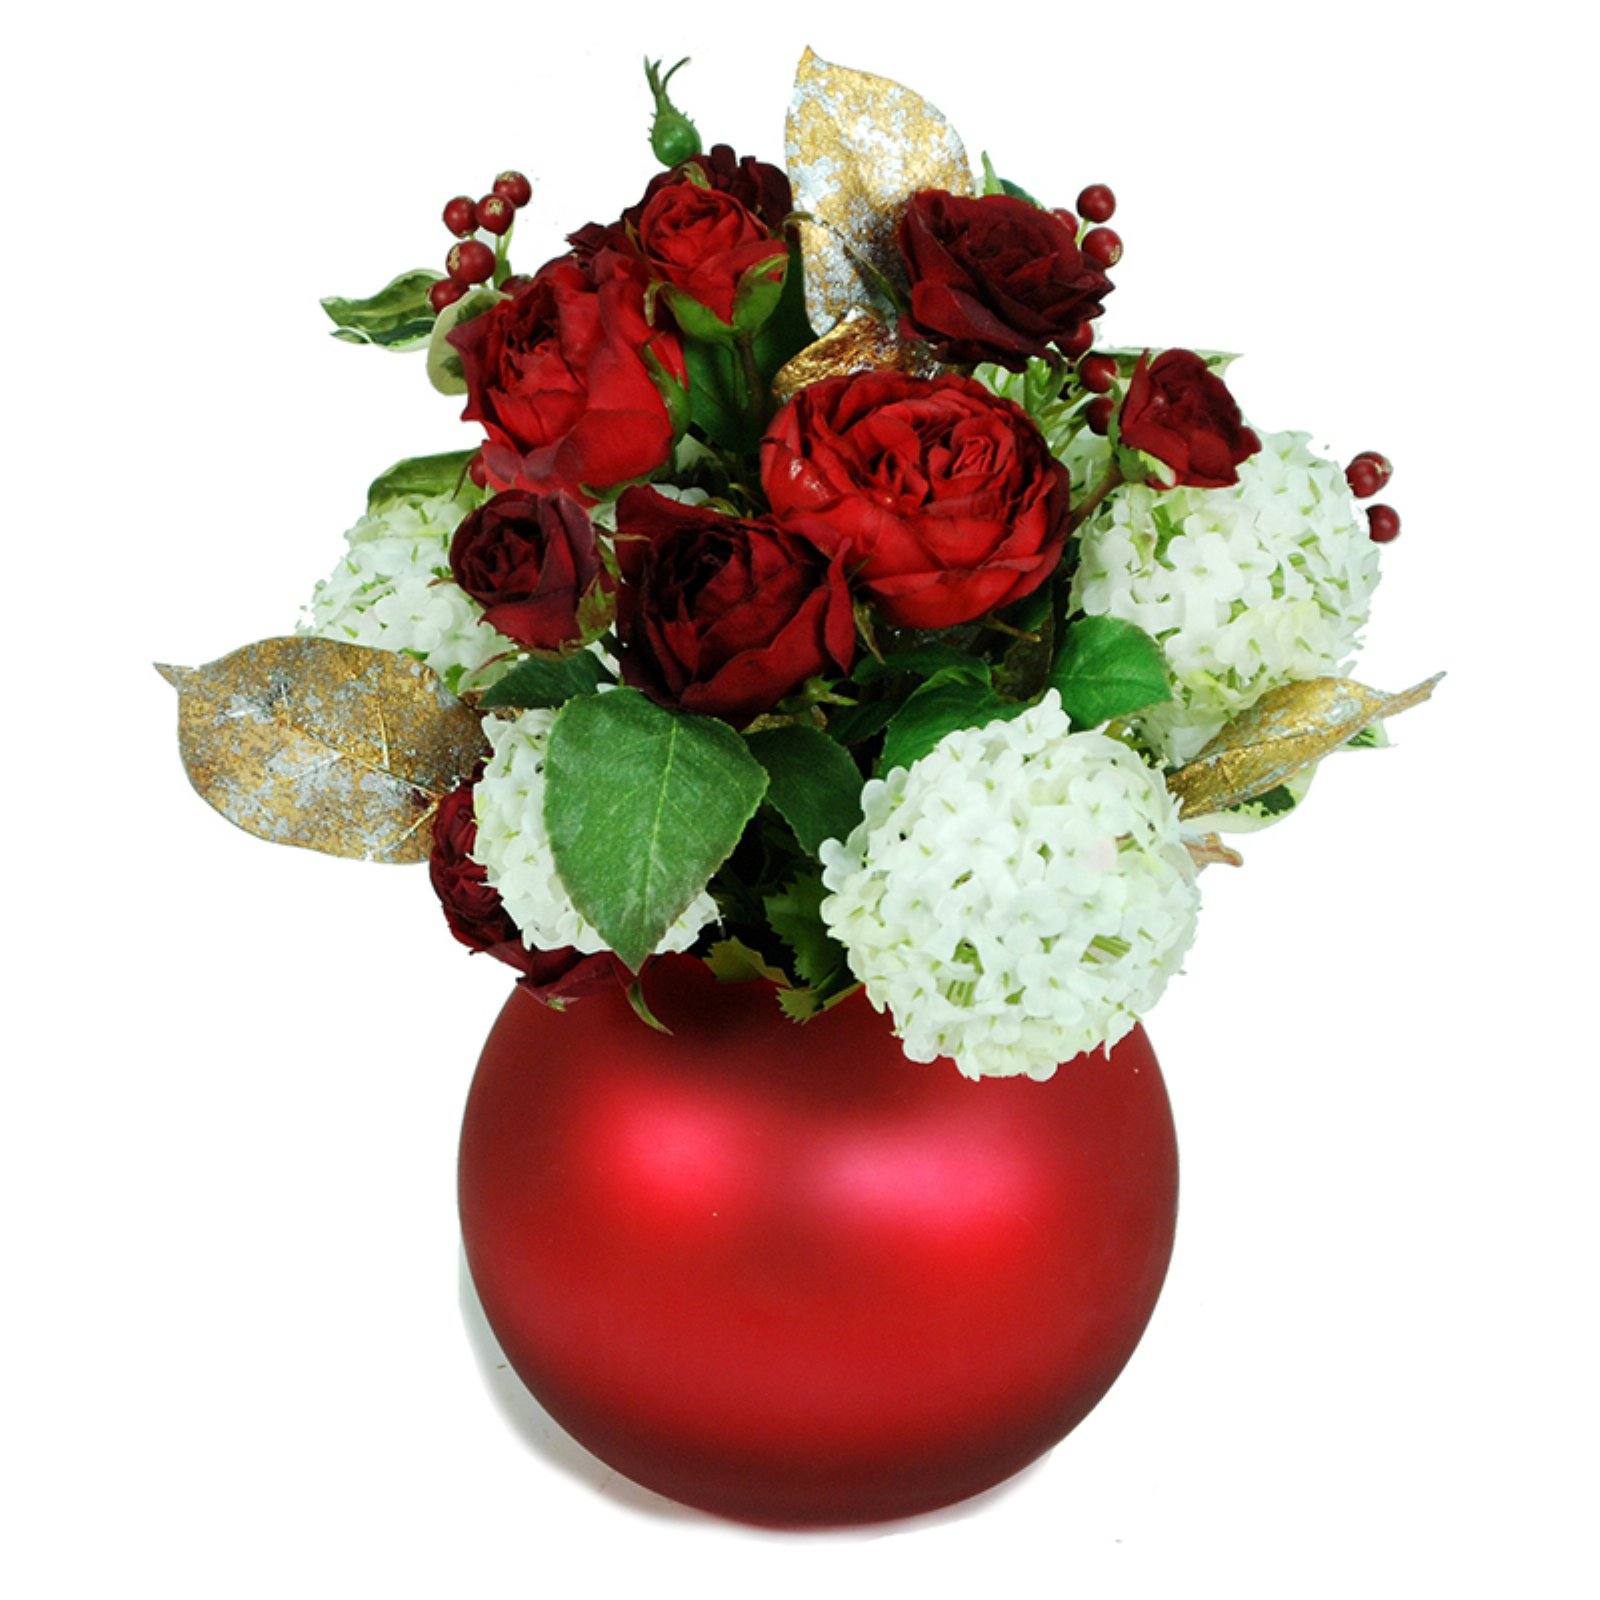 Jane Seymour Botanicals 11 in. Mixed Rose and Snowball Centerpiece with Ball Vase Silk Flower Arrangement